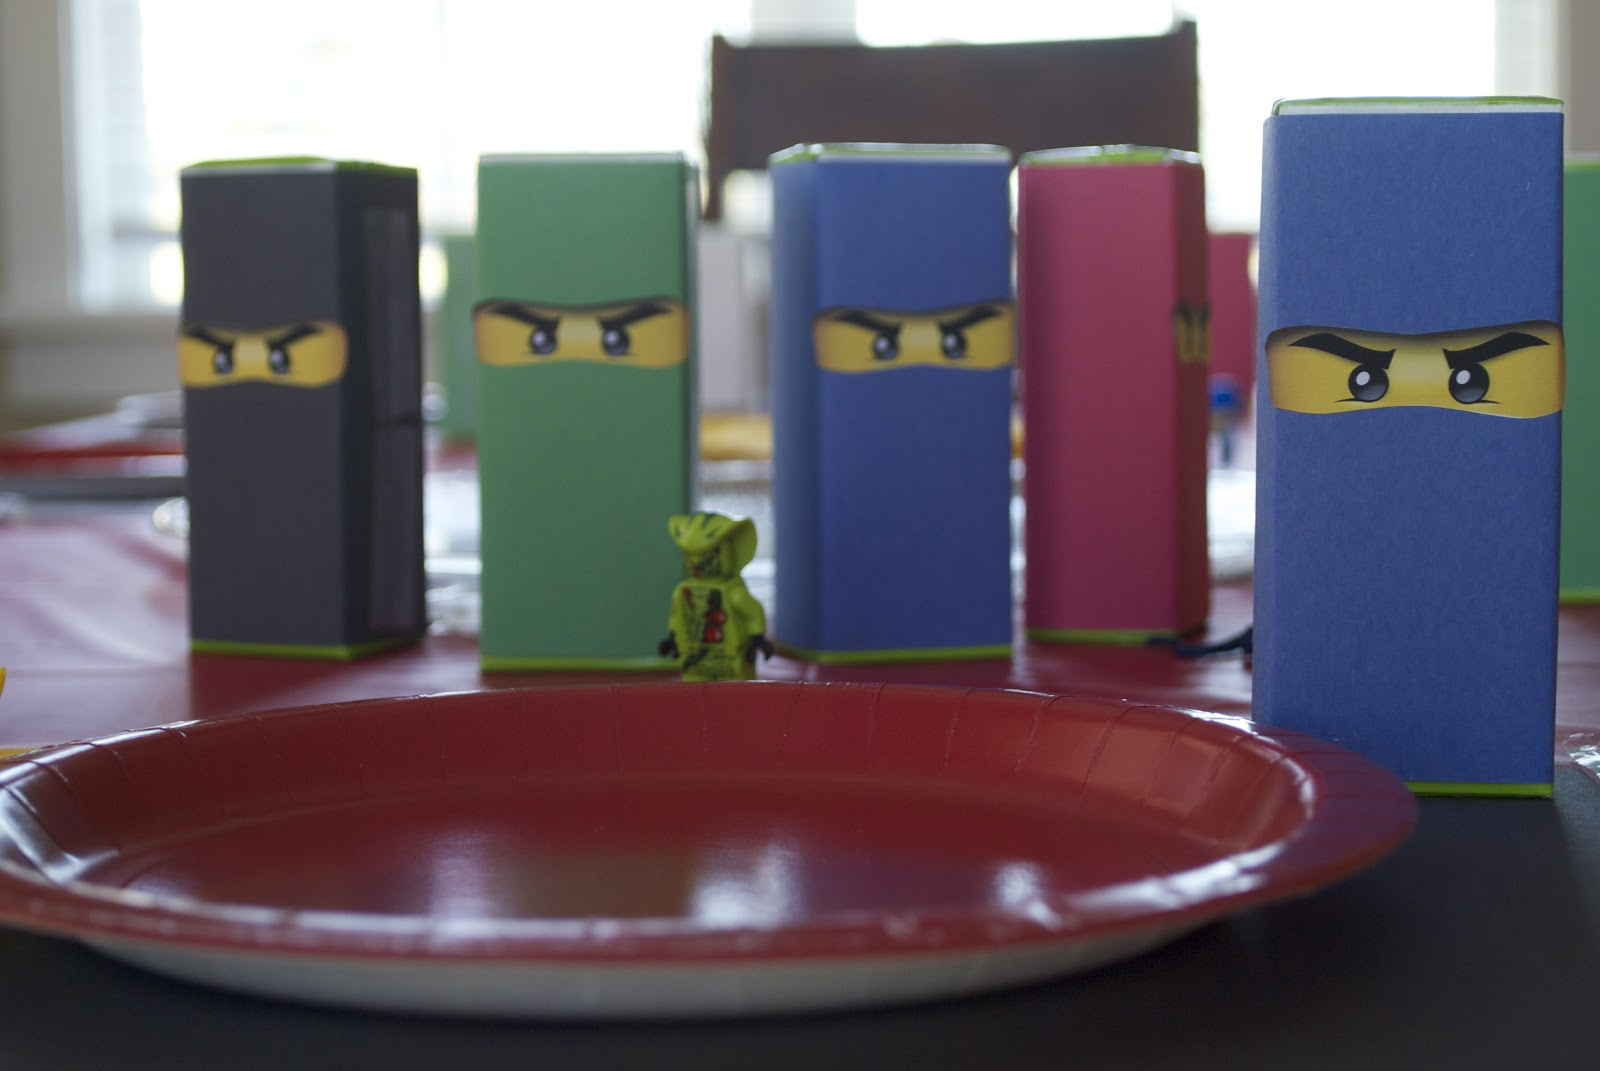 How To Make Origami Ninjago  I Wrapped Juice Boxes In The Same Ninjago  Colored Construction